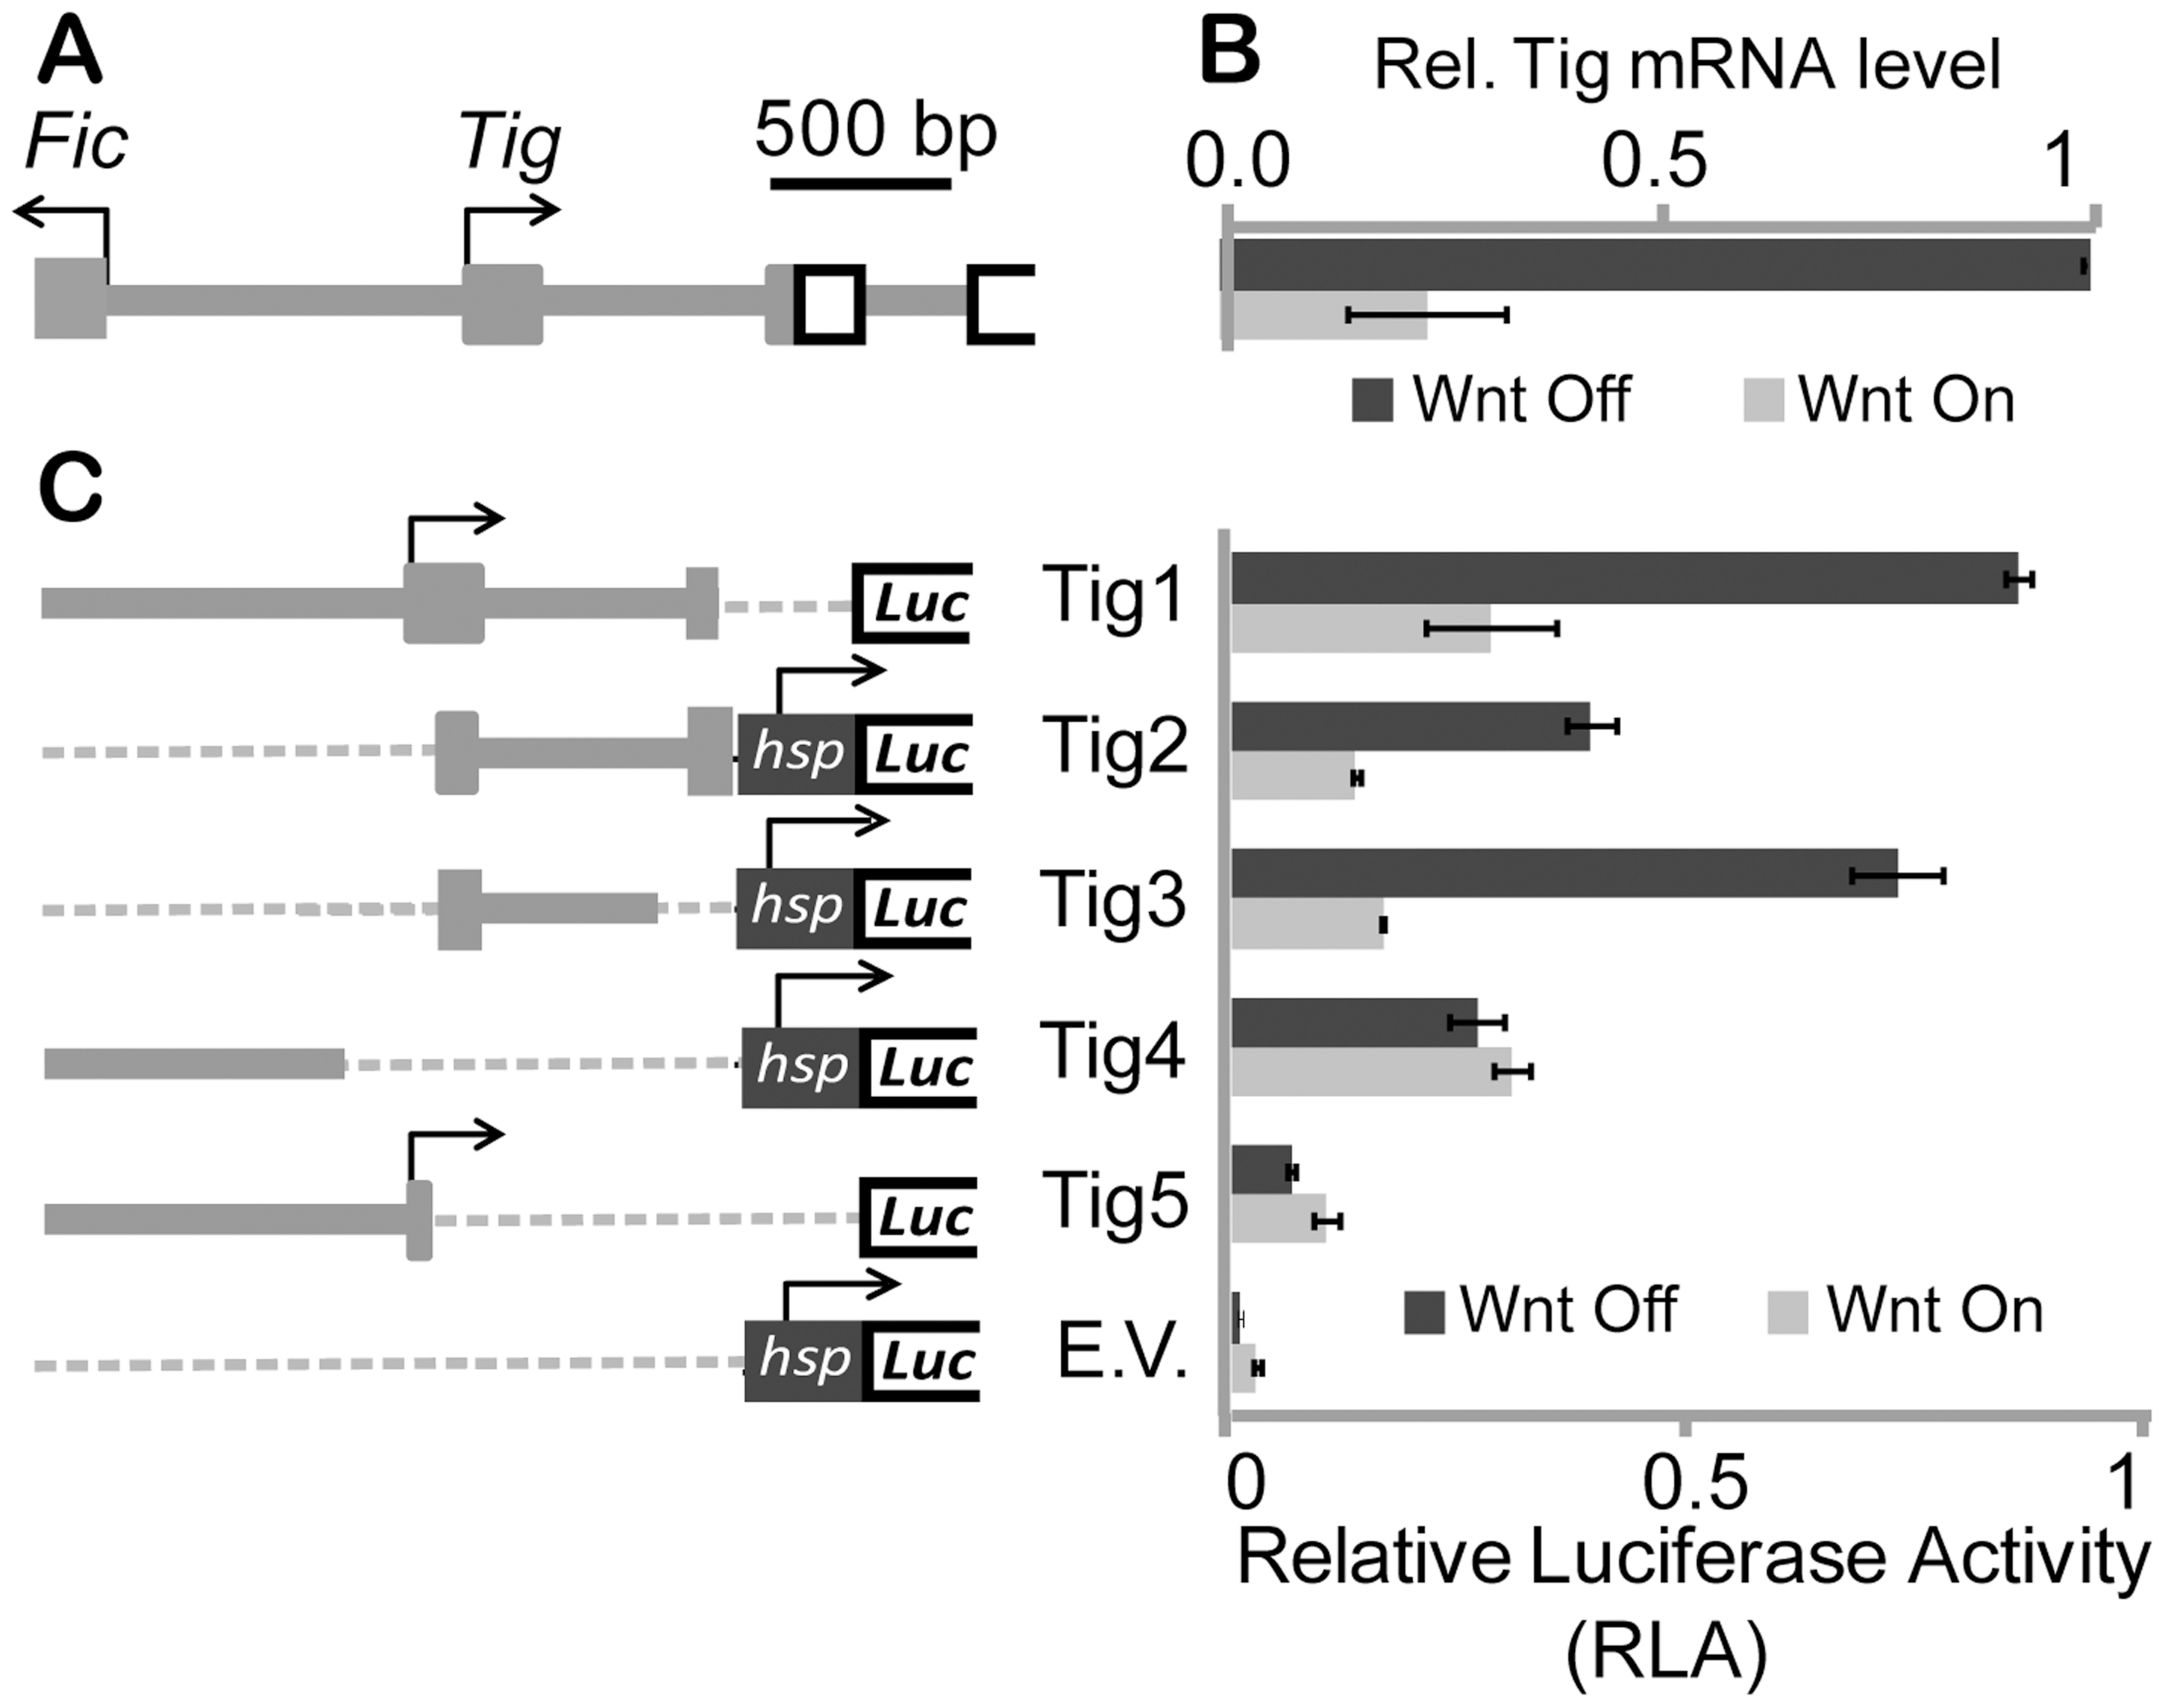 Characterization of <i>Tig</i> cis-regulatory information in Kc cells.